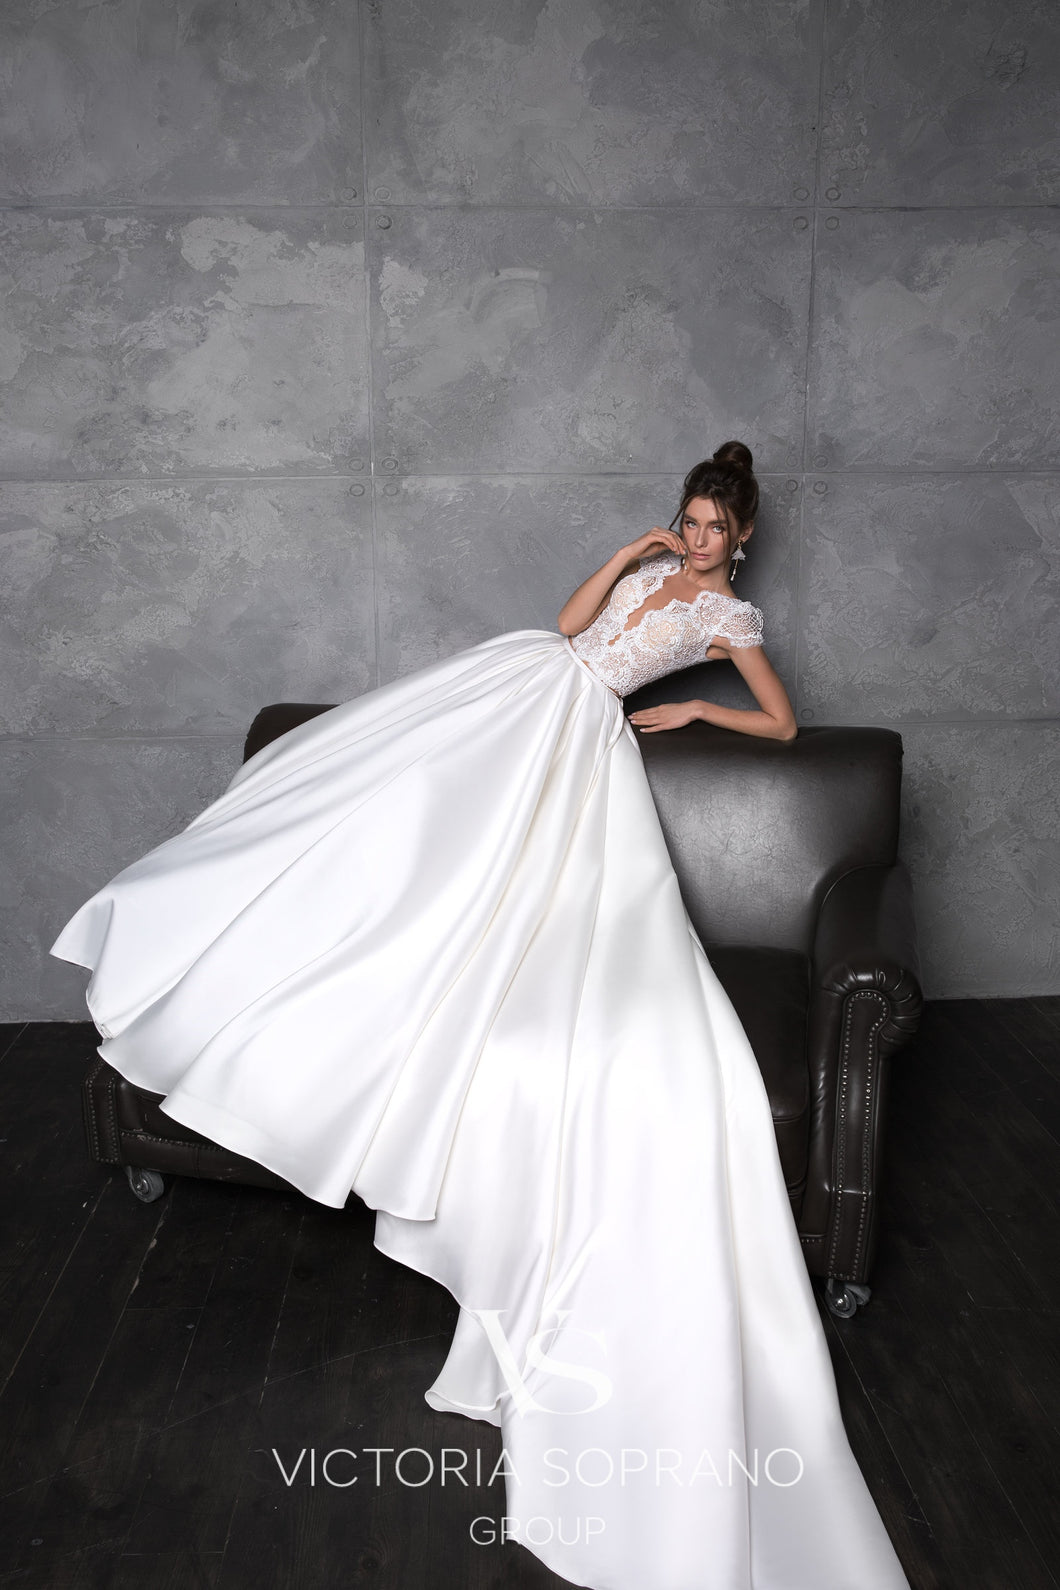 Chic Royal Collection 'Totti' Victoria Soprano RTW 22019-285 Ready To Wear European Bridal Wedding Gown Designer Philippines